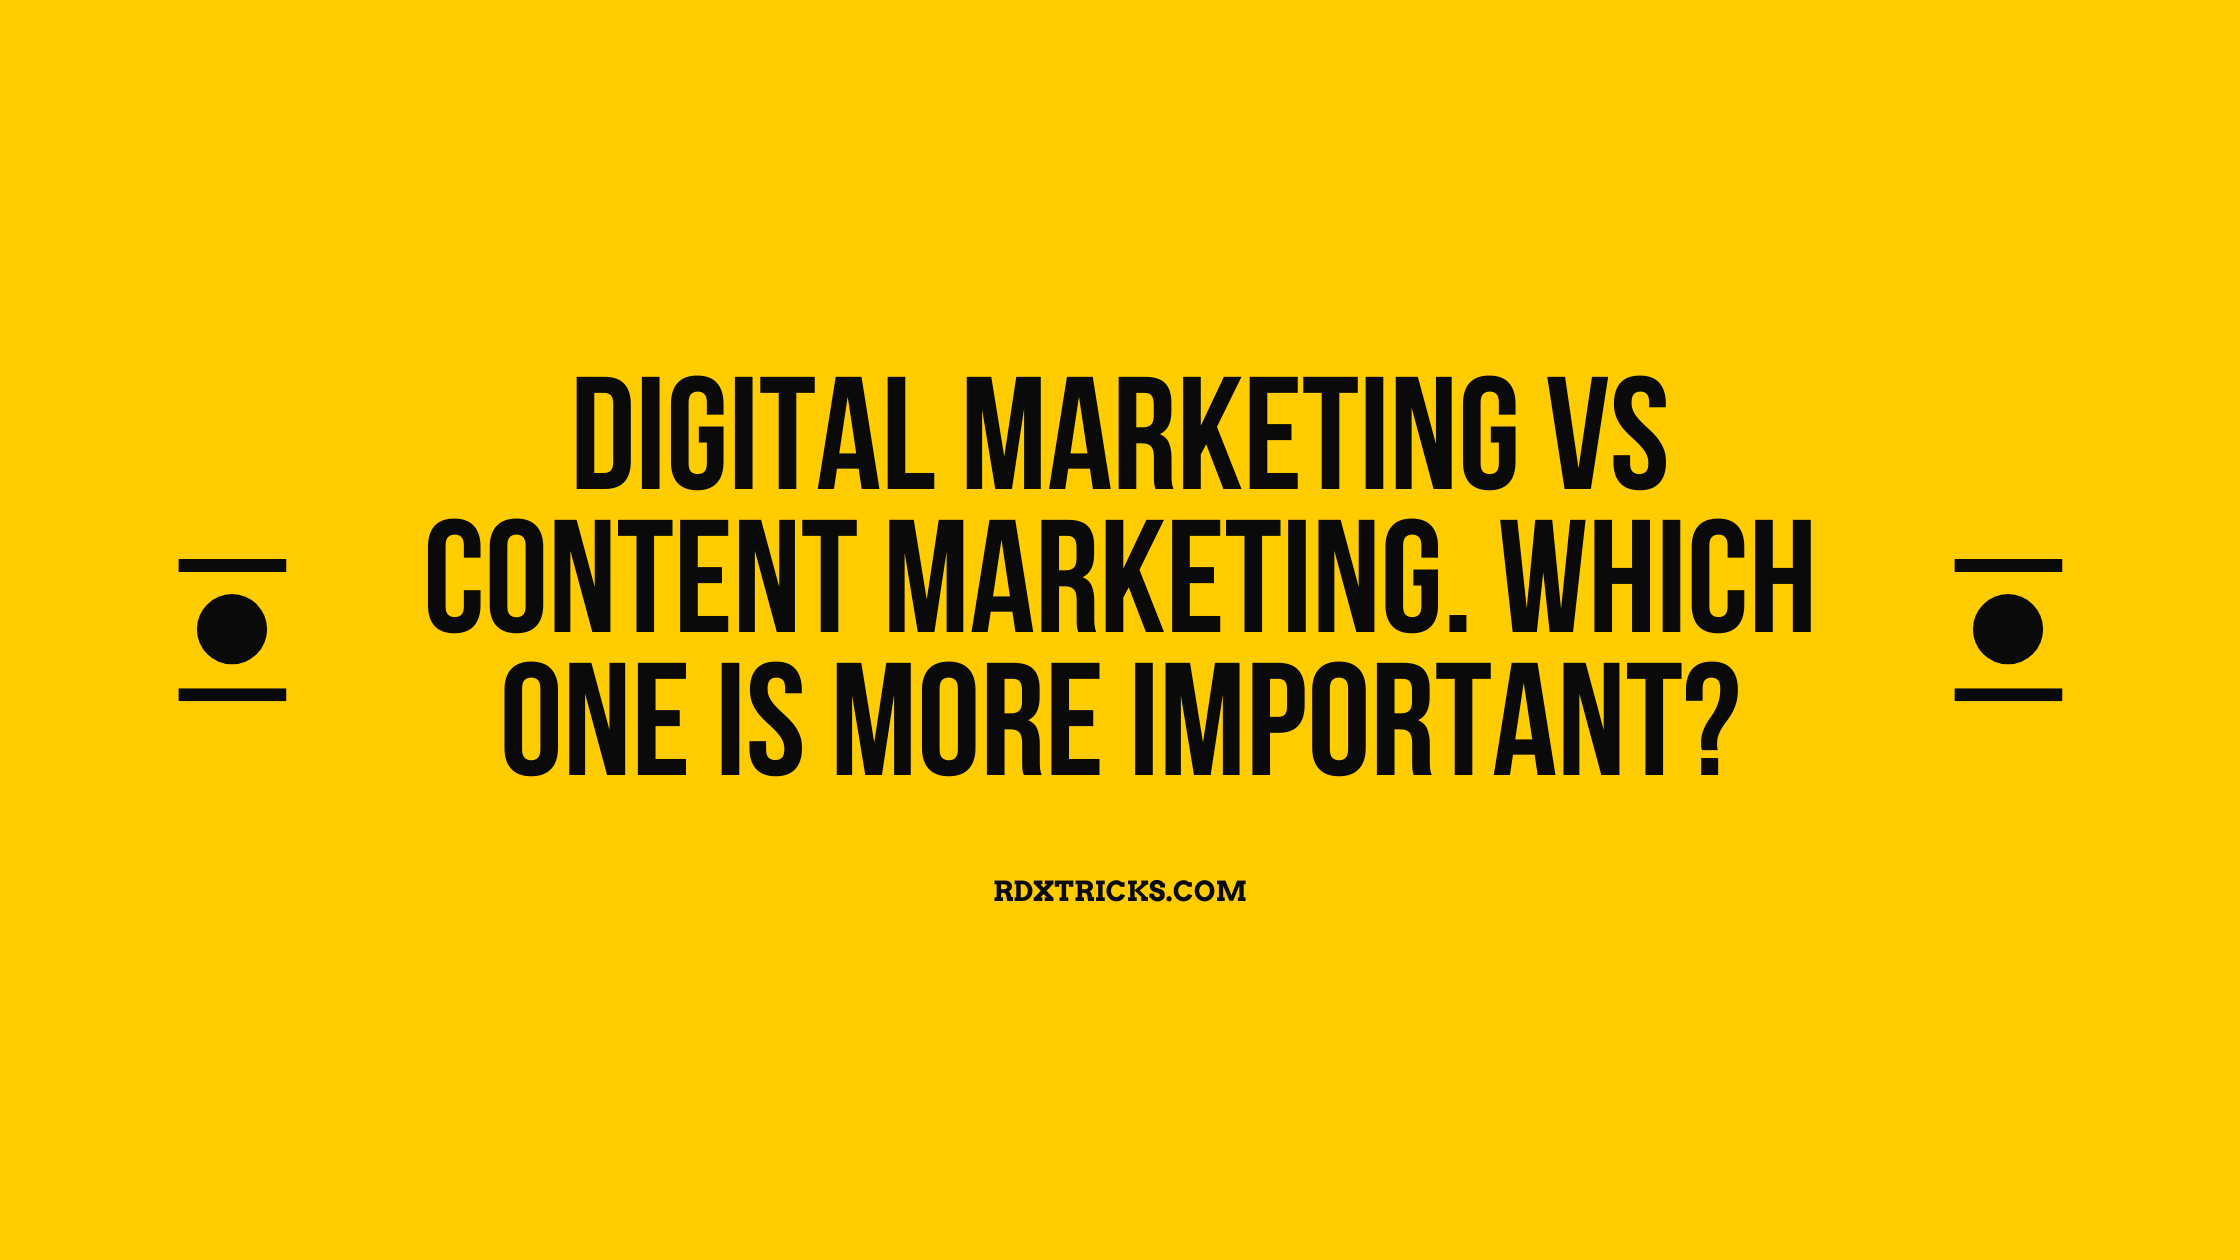 Digital Marketing Vs Content Marketing. Which one is more important?